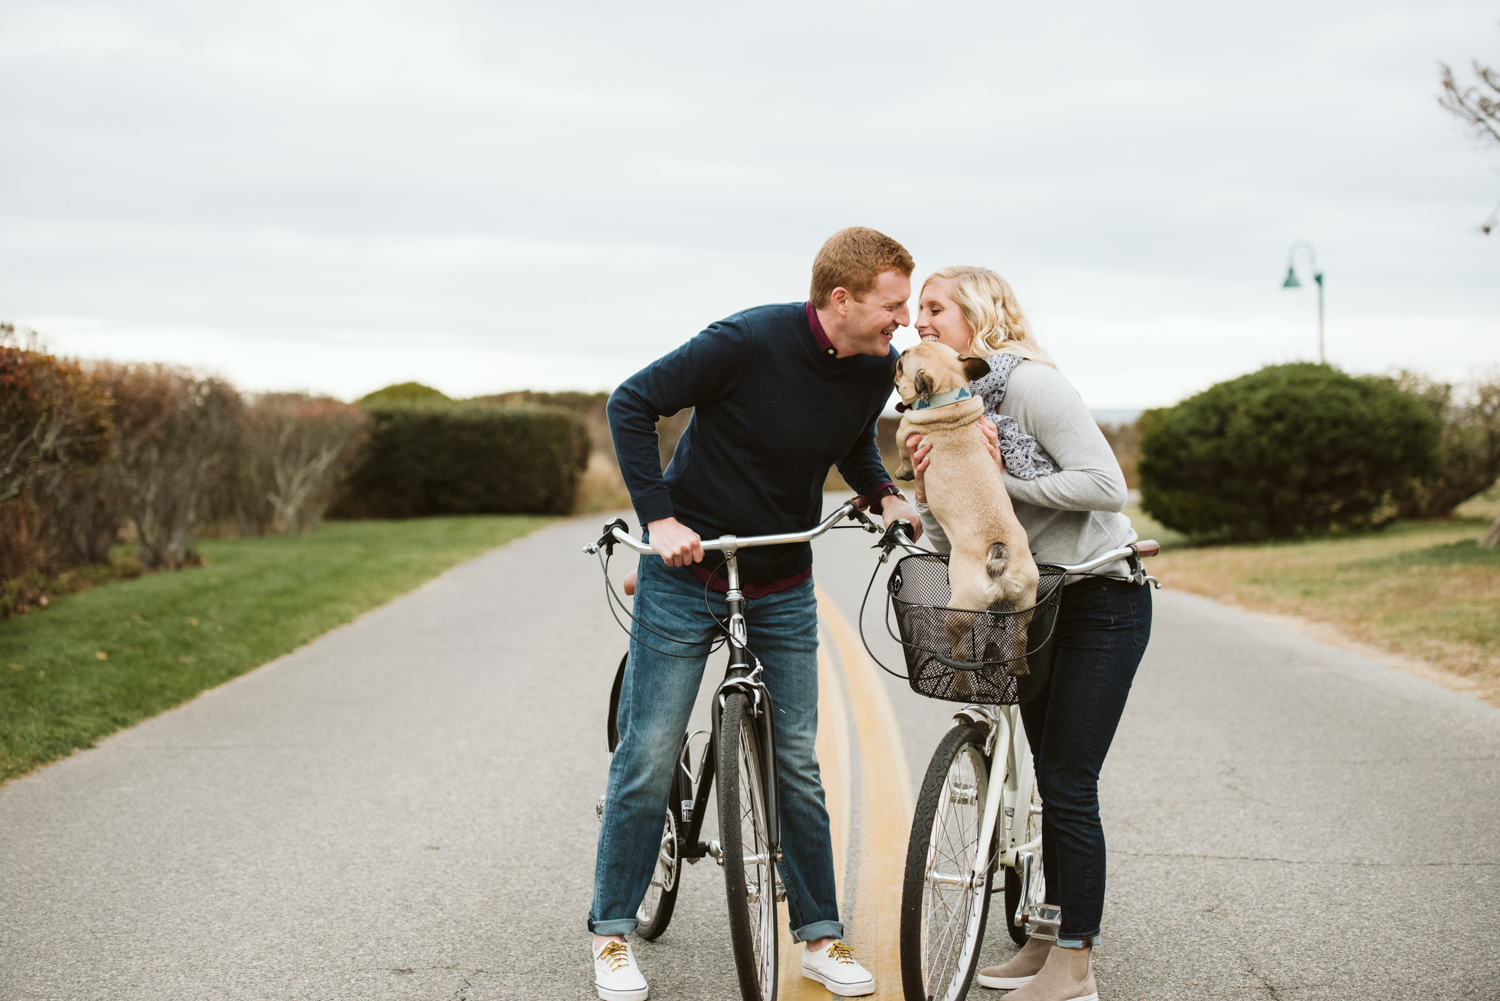 engagement_session_marthas_vineyard_DSC_1587.jpg